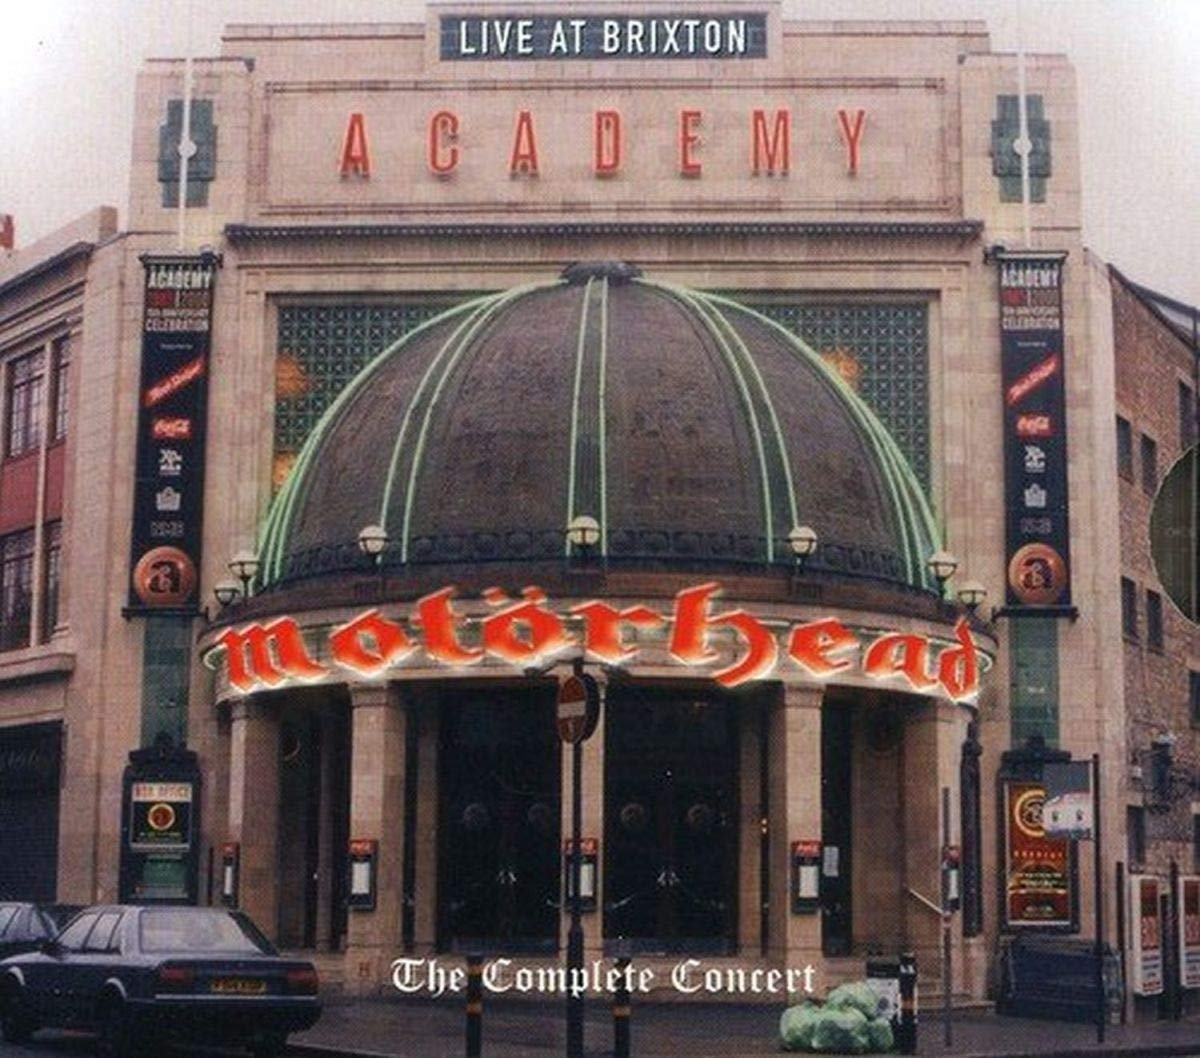 Live At Brixton Academy (this is different than Live at Brixton) by Steamhammer Europe